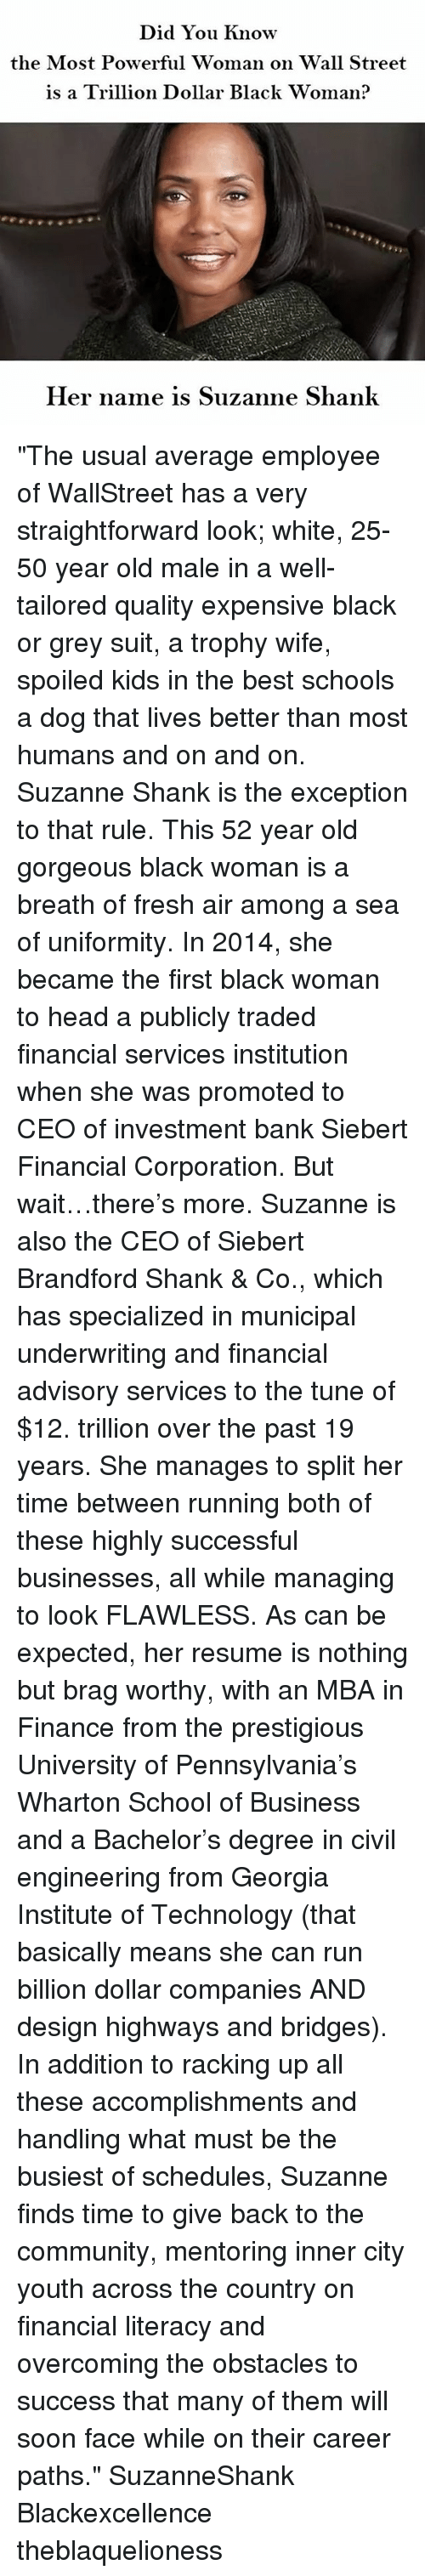 """shank: Did You know  the Most Powerful Woman on Wall Street  is a Trillion Dollar Black woman?  Her name is Suzanne Shank """"The usual average employee of WallStreet has a very straightforward look; white, 25-50 year old male in a well-tailored quality expensive black or grey suit, a trophy wife, spoiled kids in the best schools a dog that lives better than most humans and on and on. Suzanne Shank is the exception to that rule. This 52 year old gorgeous black woman is a breath of fresh air among a sea of uniformity. In 2014, she became the first black woman to head a publicly traded financial services institution when she was promoted to CEO of investment bank Siebert Financial Corporation. But wait…there's more. Suzanne is also the CEO of Siebert Brandford Shank & Co., which has specialized in municipal underwriting and financial advisory services to the tune of $12. trillion over the past 19 years. She manages to split her time between running both of these highly successful businesses, all while managing to look FLAWLESS. As can be expected, her resume is nothing but brag worthy, with an MBA in Finance from the prestigious University of Pennsylvania's Wharton School of Business and a Bachelor's degree in civil engineering from Georgia Institute of Technology (that basically means she can run billion dollar companies AND design highways and bridges). In addition to racking up all these accomplishments and handling what must be the busiest of schedules, Suzanne finds time to give back to the community, mentoring inner city youth across the country on financial literacy and overcoming the obstacles to success that many of them will soon face while on their career paths."""" SuzanneShank Blackexcellence theblaquelioness"""